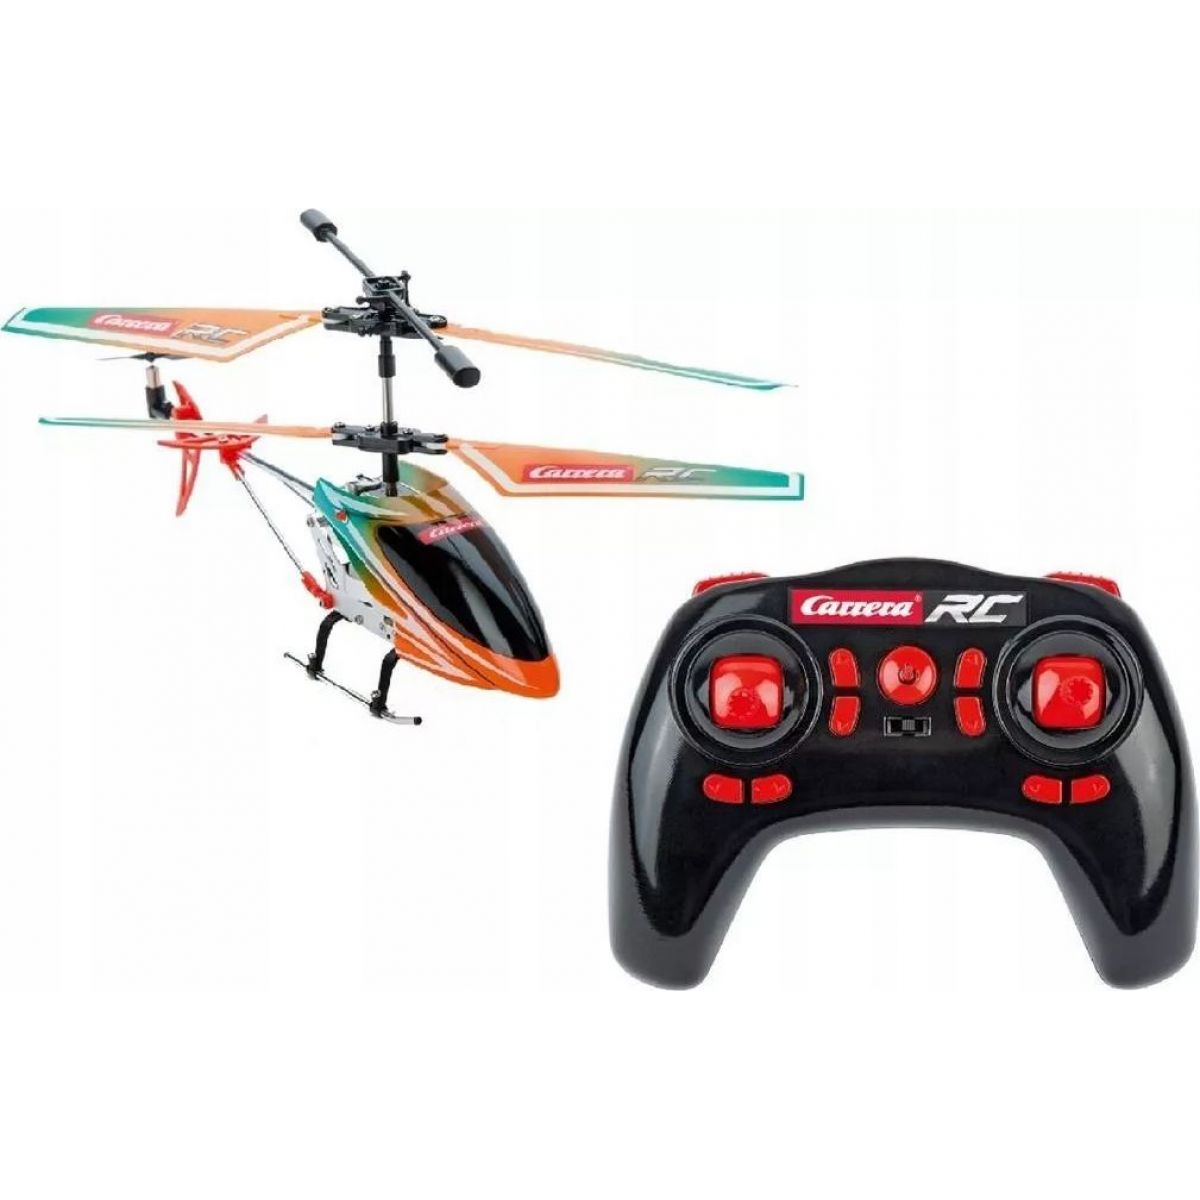 RC Helikoptéra Carrera Orange Sply II